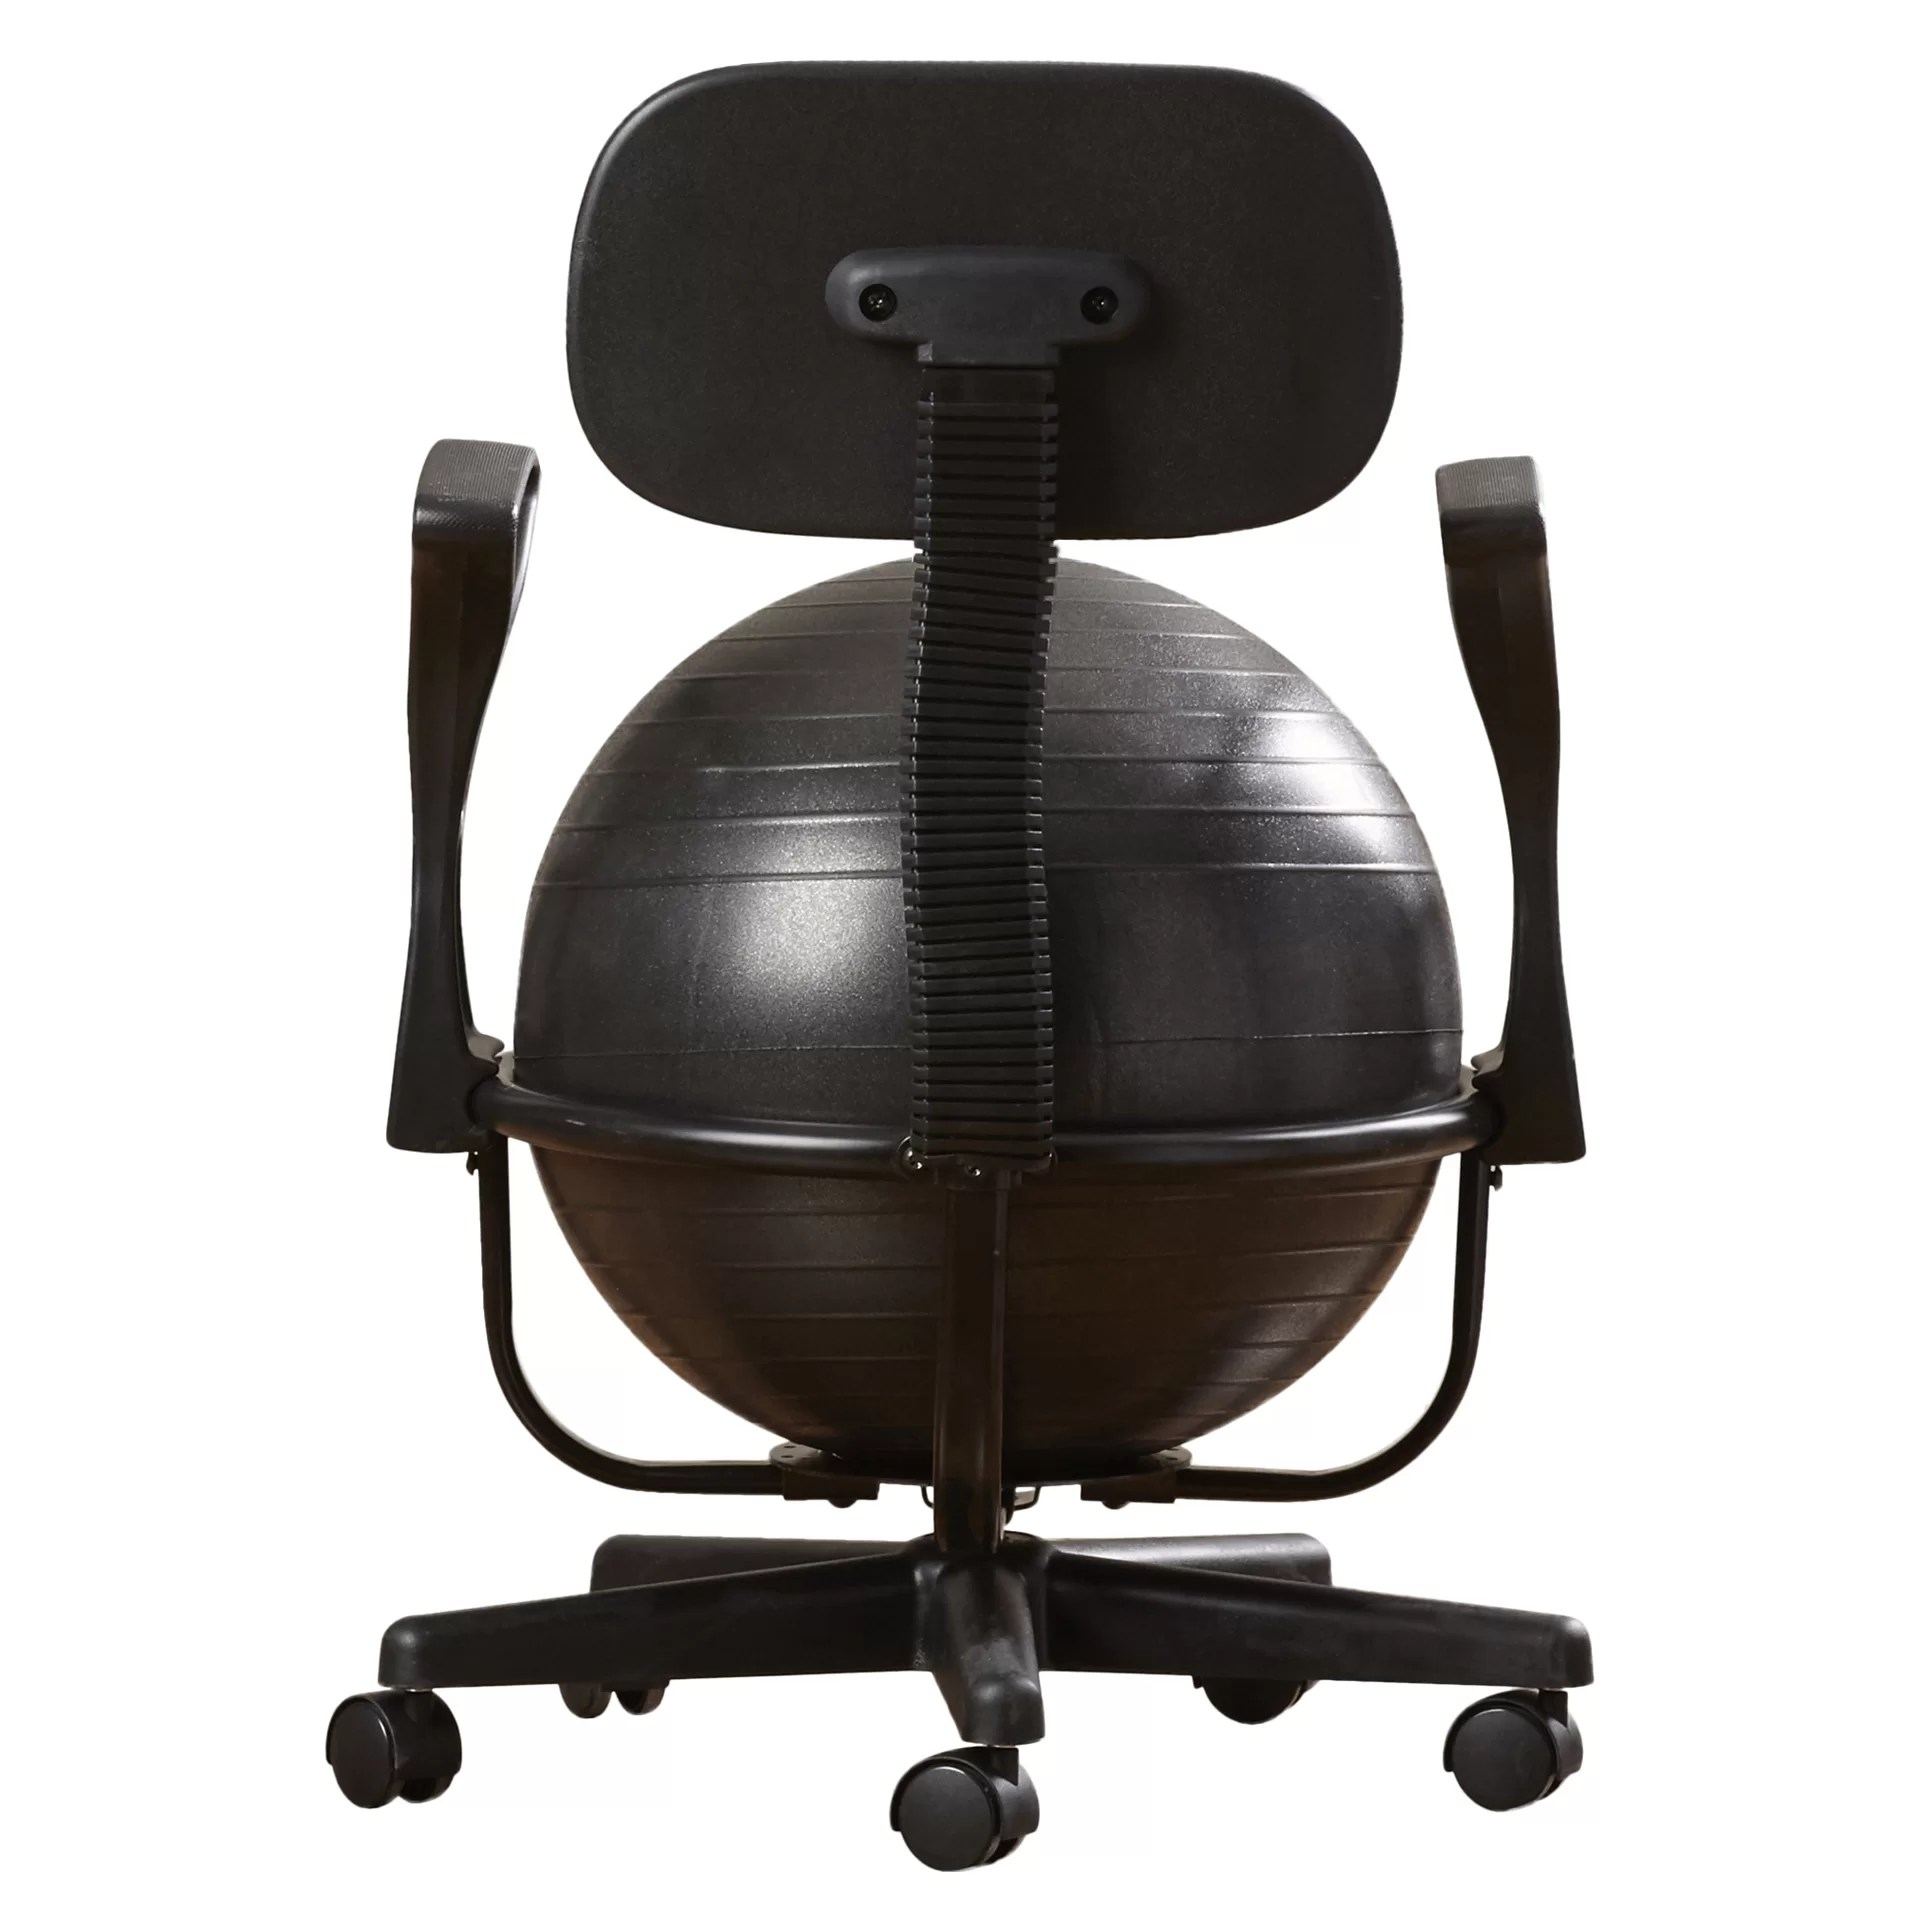 yoga ball chair reviews cushions for dining chairs nz symple stuff exercise and wayfair